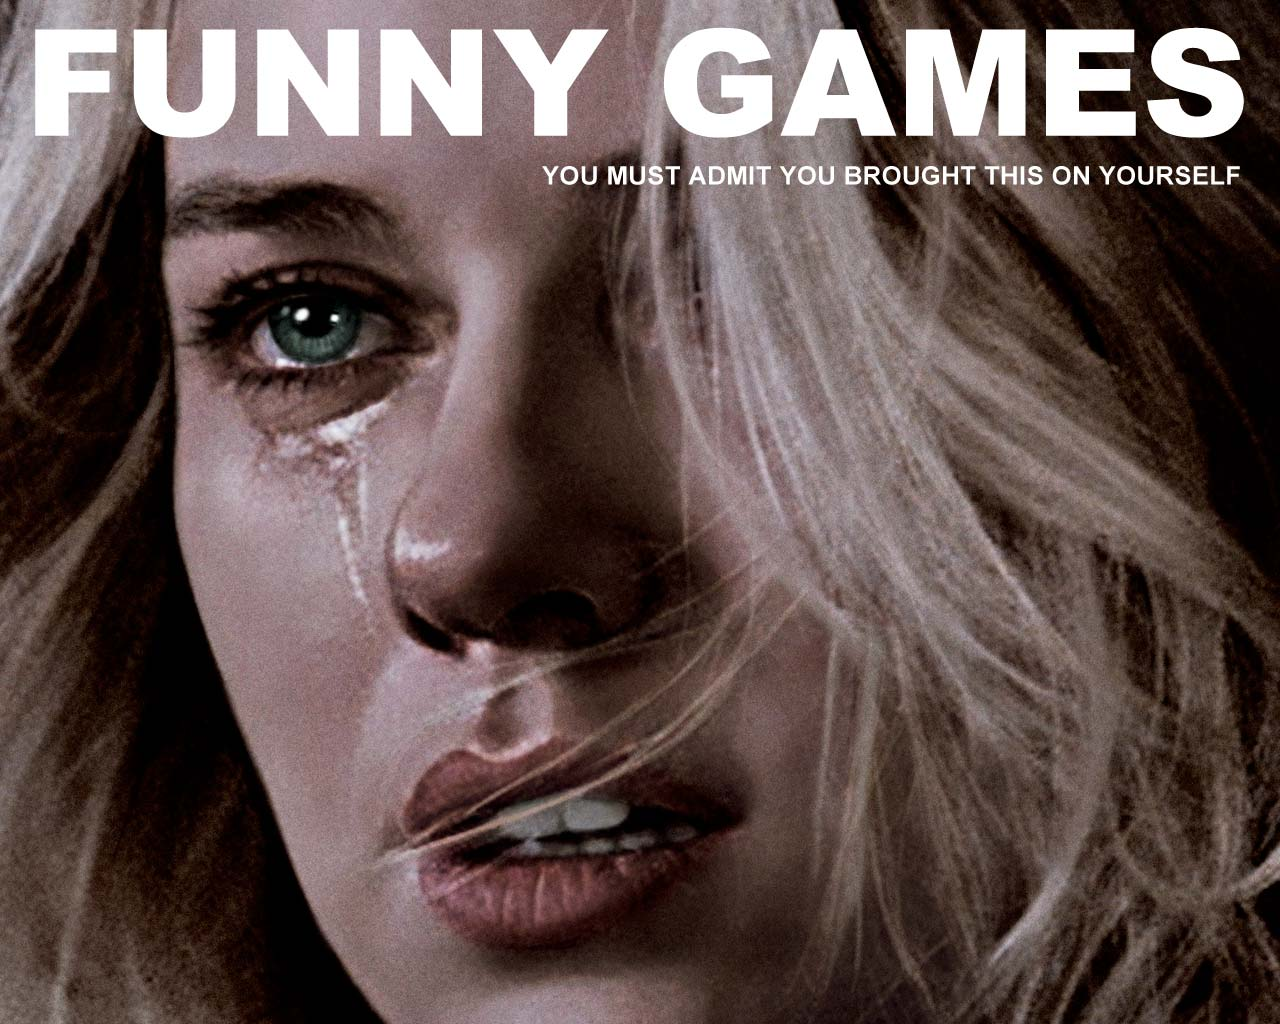 This is a poster for the movie Funny Games.